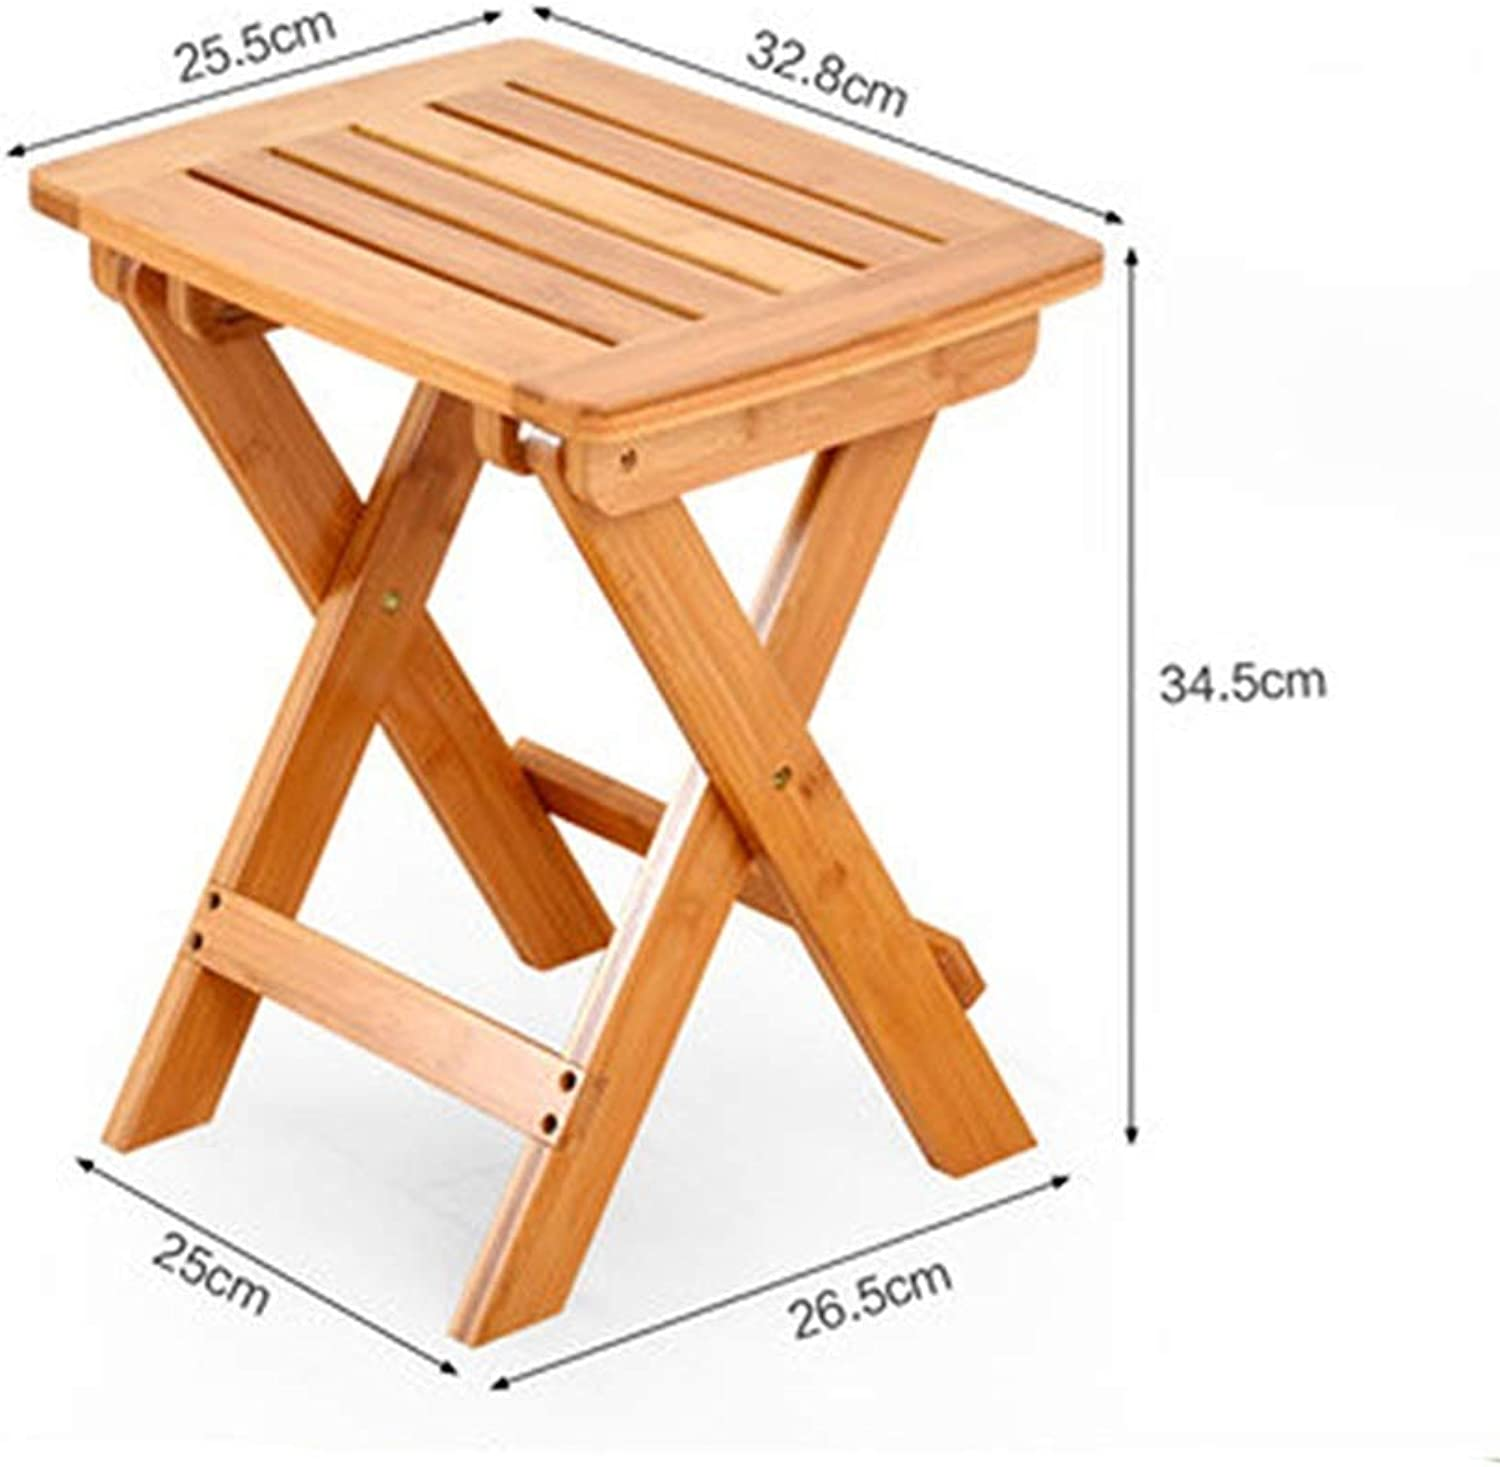 ZHAOYONGLI Footstools,Otools Small Folding Chair Small Bench Terrace Home Casual Armchair Bamboo Wood Stool Stool Feet Free Inssizetion (color   Primary color, Size   32.8  25.5  34.5cm)